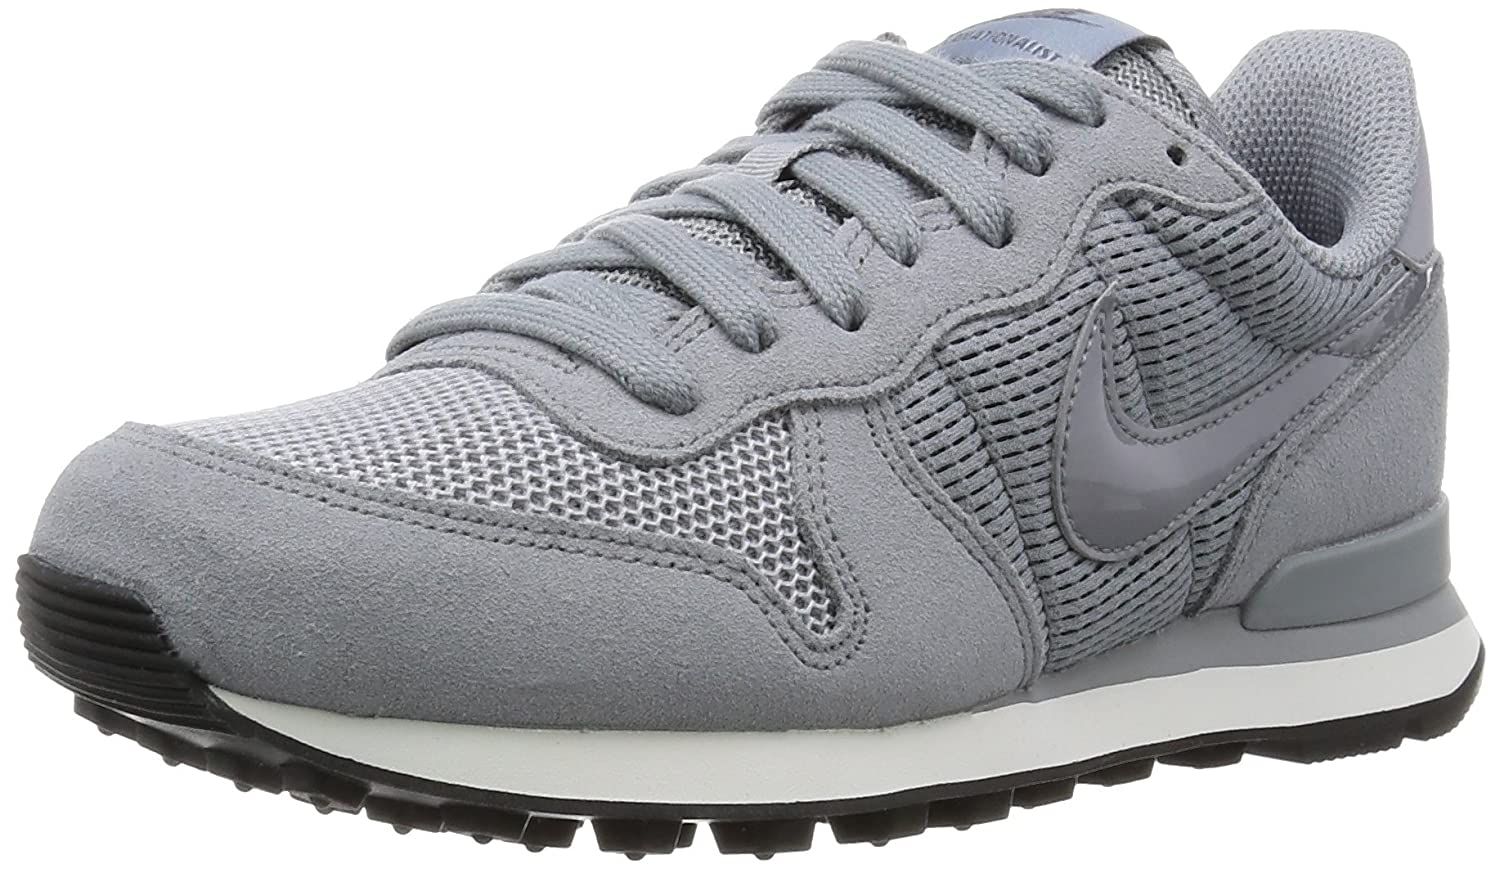 nike damen internationalist gymnastikschuhe grau wolf gr e y summit whitesummit 023 42 5 eu. Black Bedroom Furniture Sets. Home Design Ideas